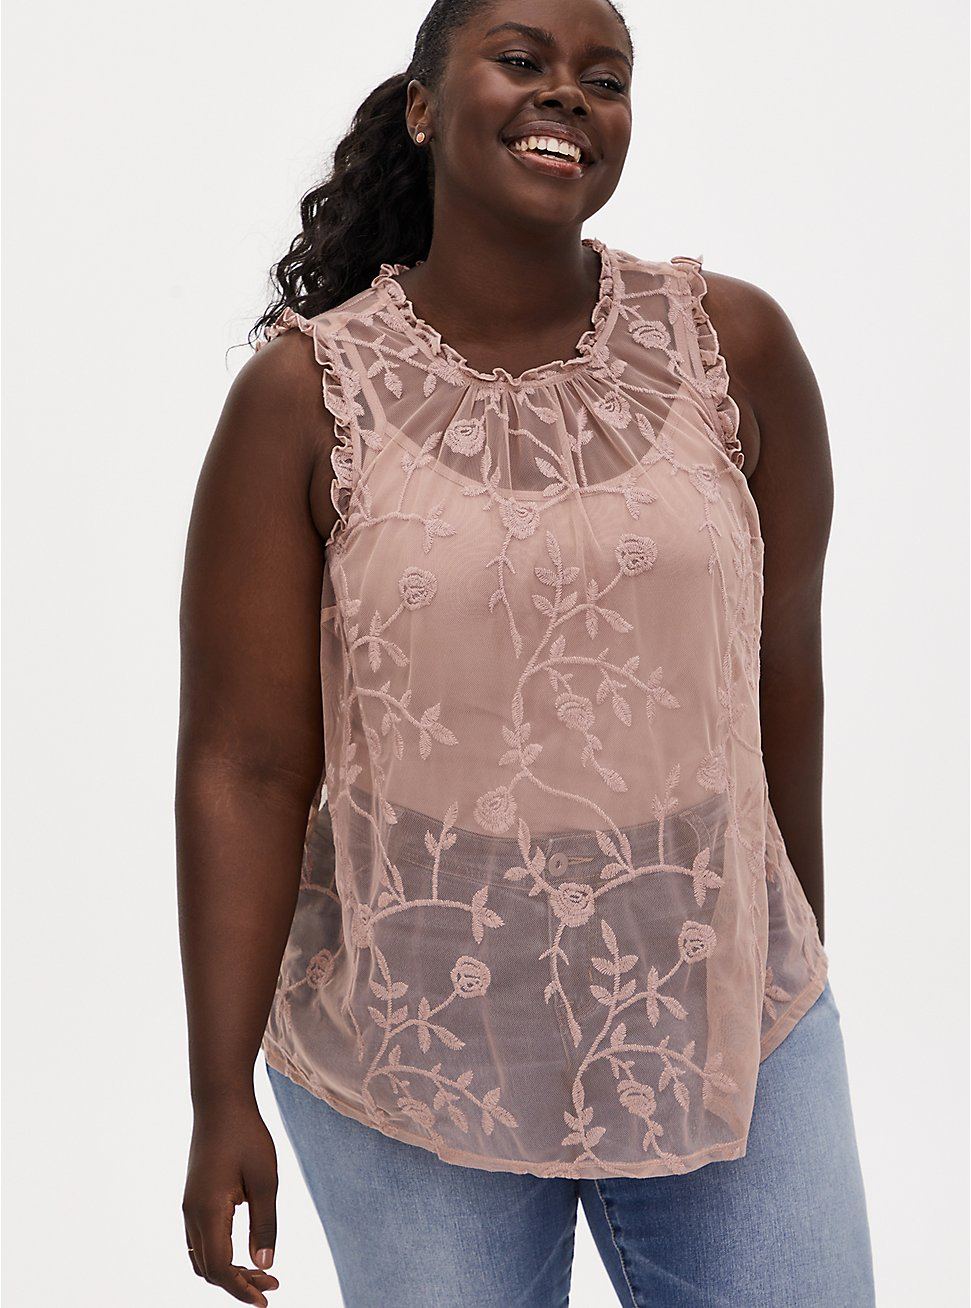 Taupe Sheer Mesh Embroidered Ruffle Sleeveless Blouse, FAWN, hi-res